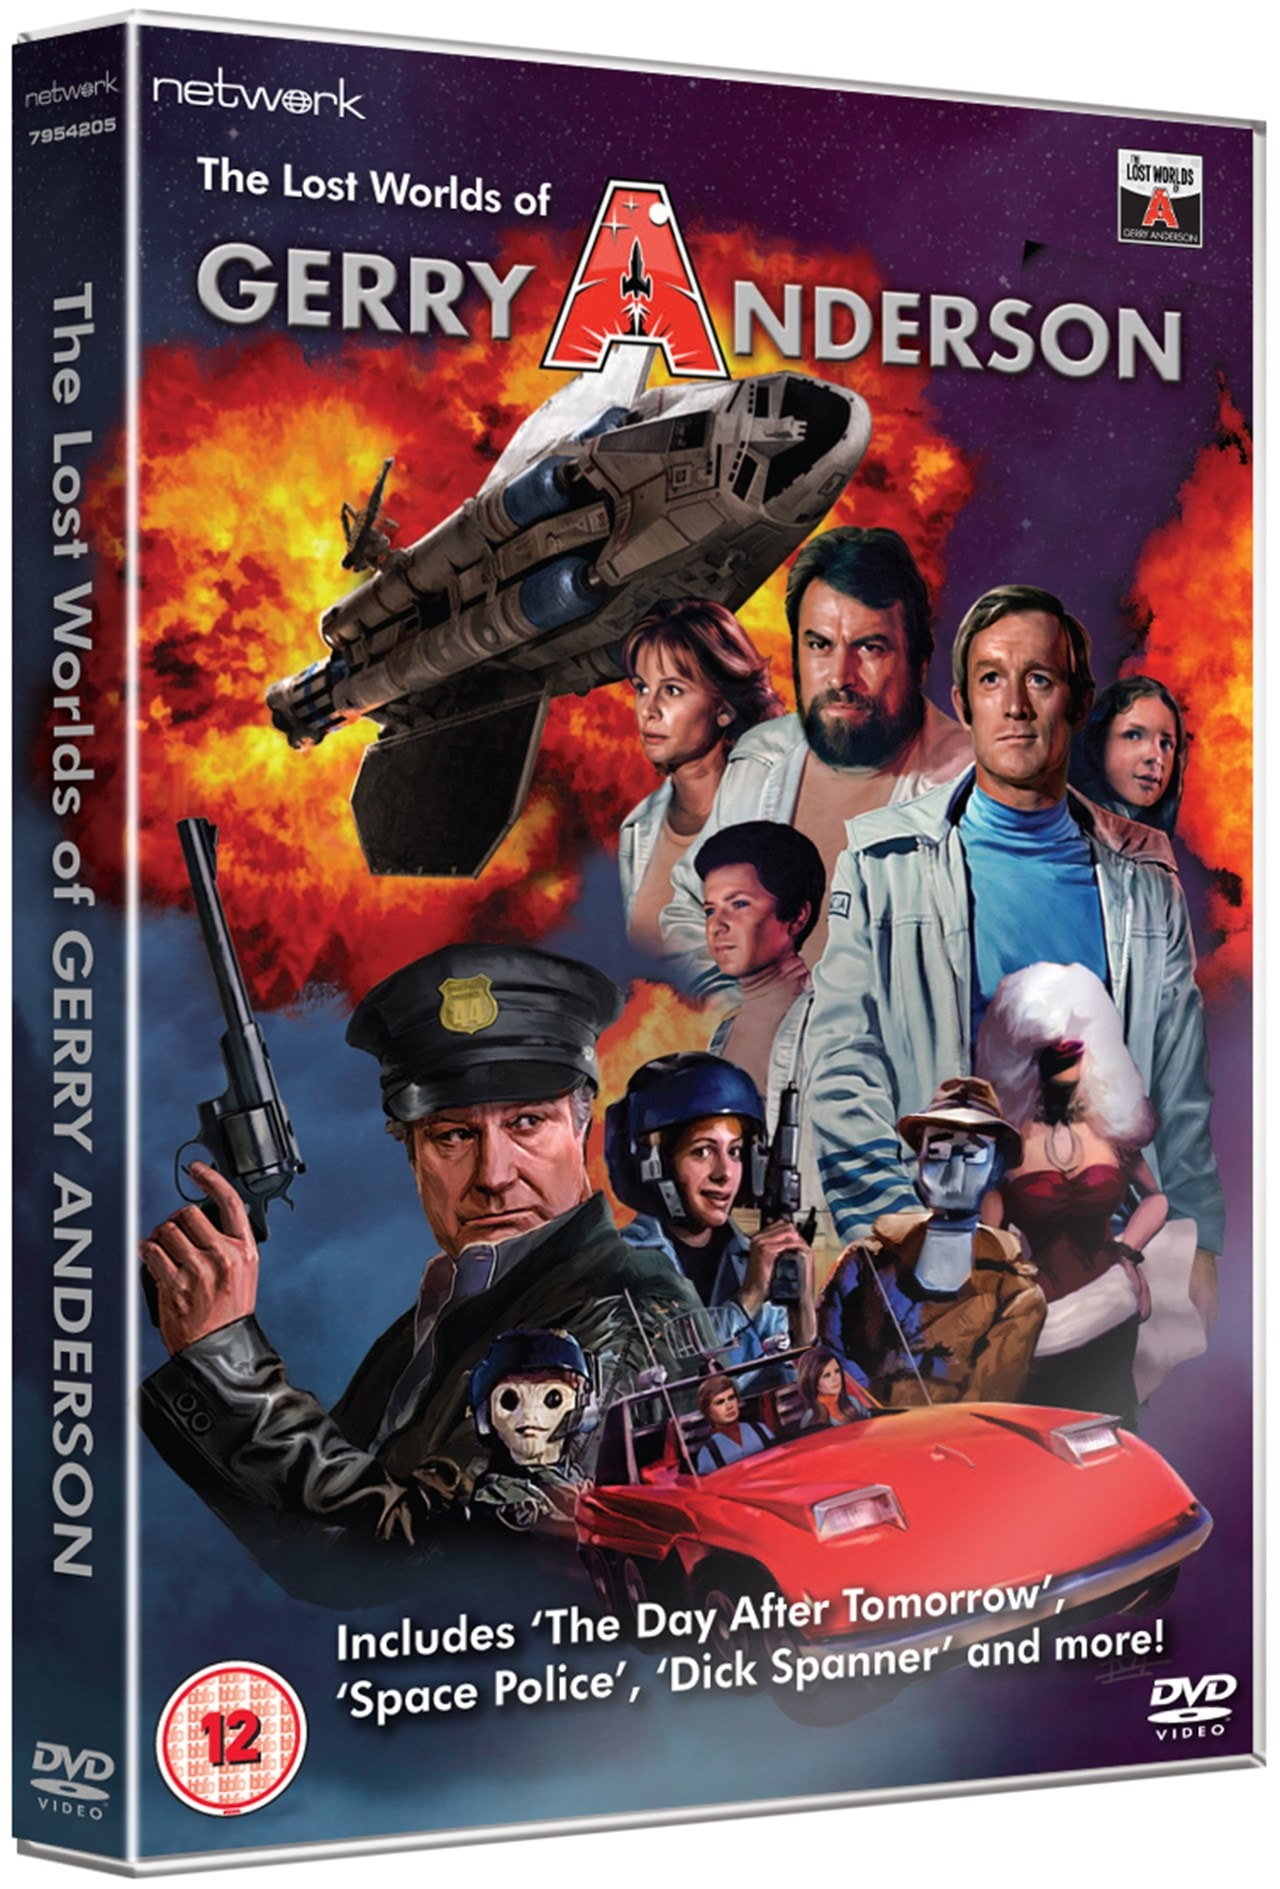 The Lost Worlds of Gerry Anderson - 2